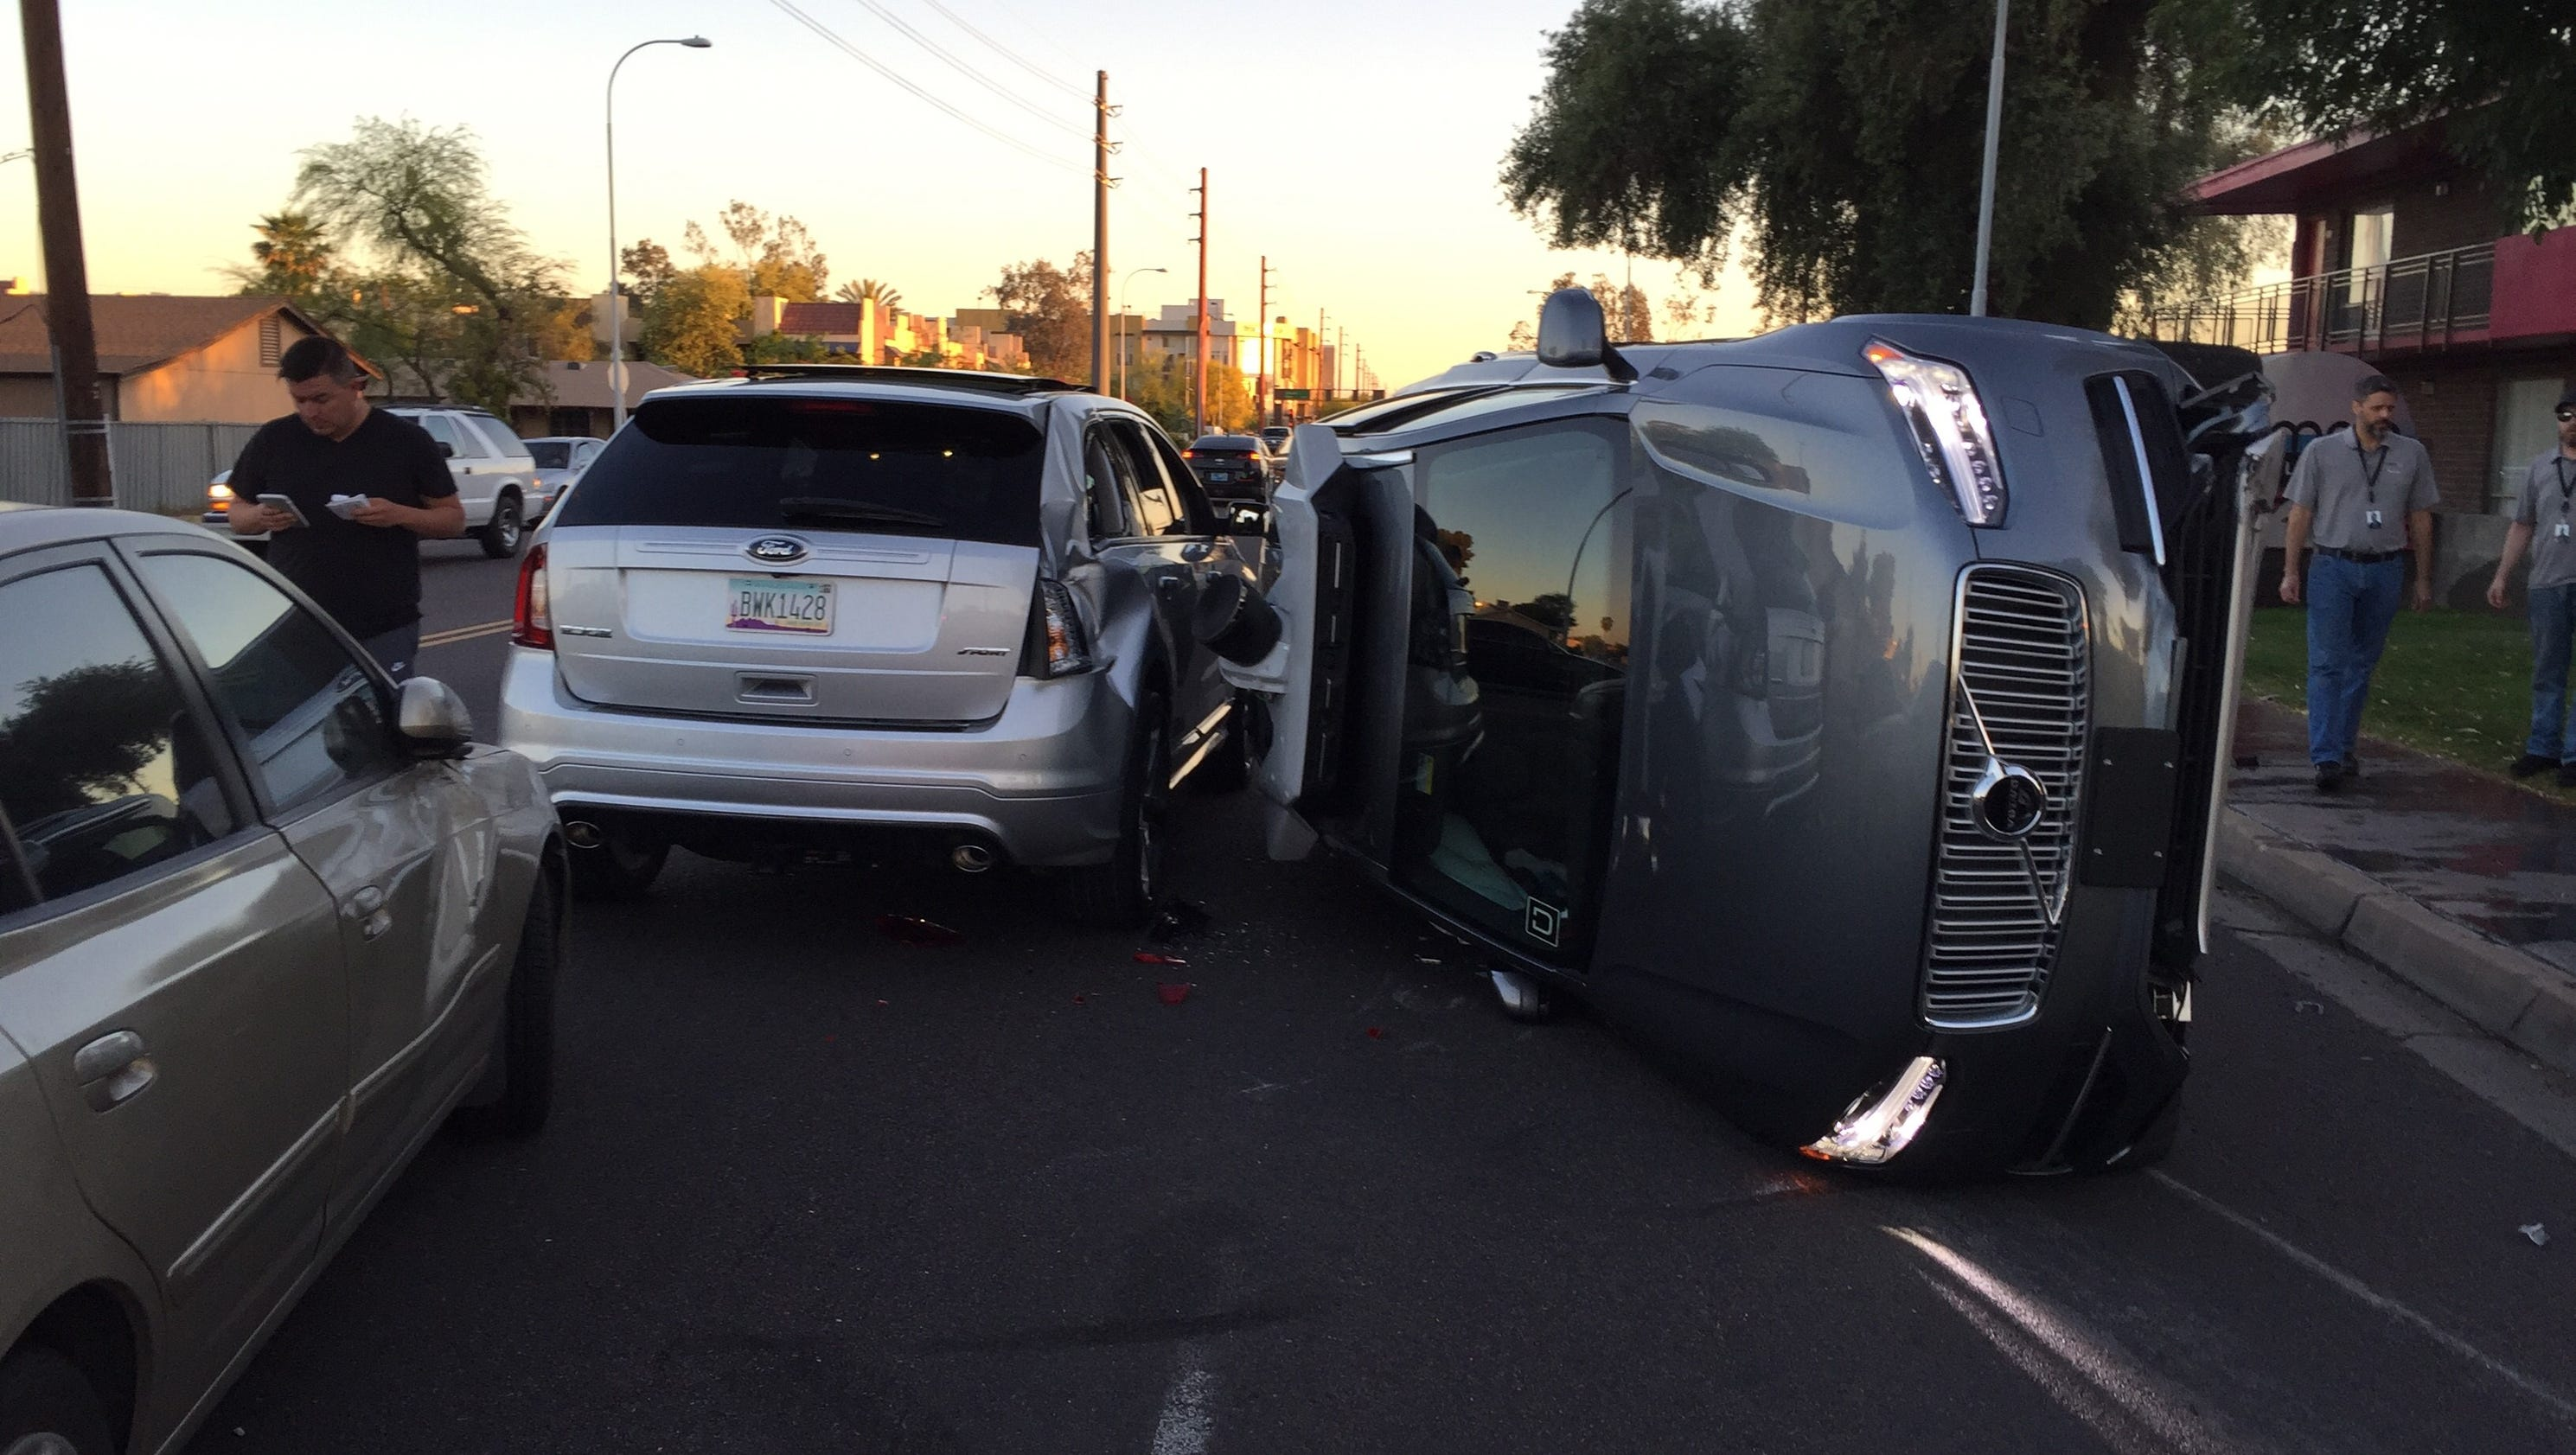 Who was at fault in self-driving Uber crash? Accounts in Tempe ...